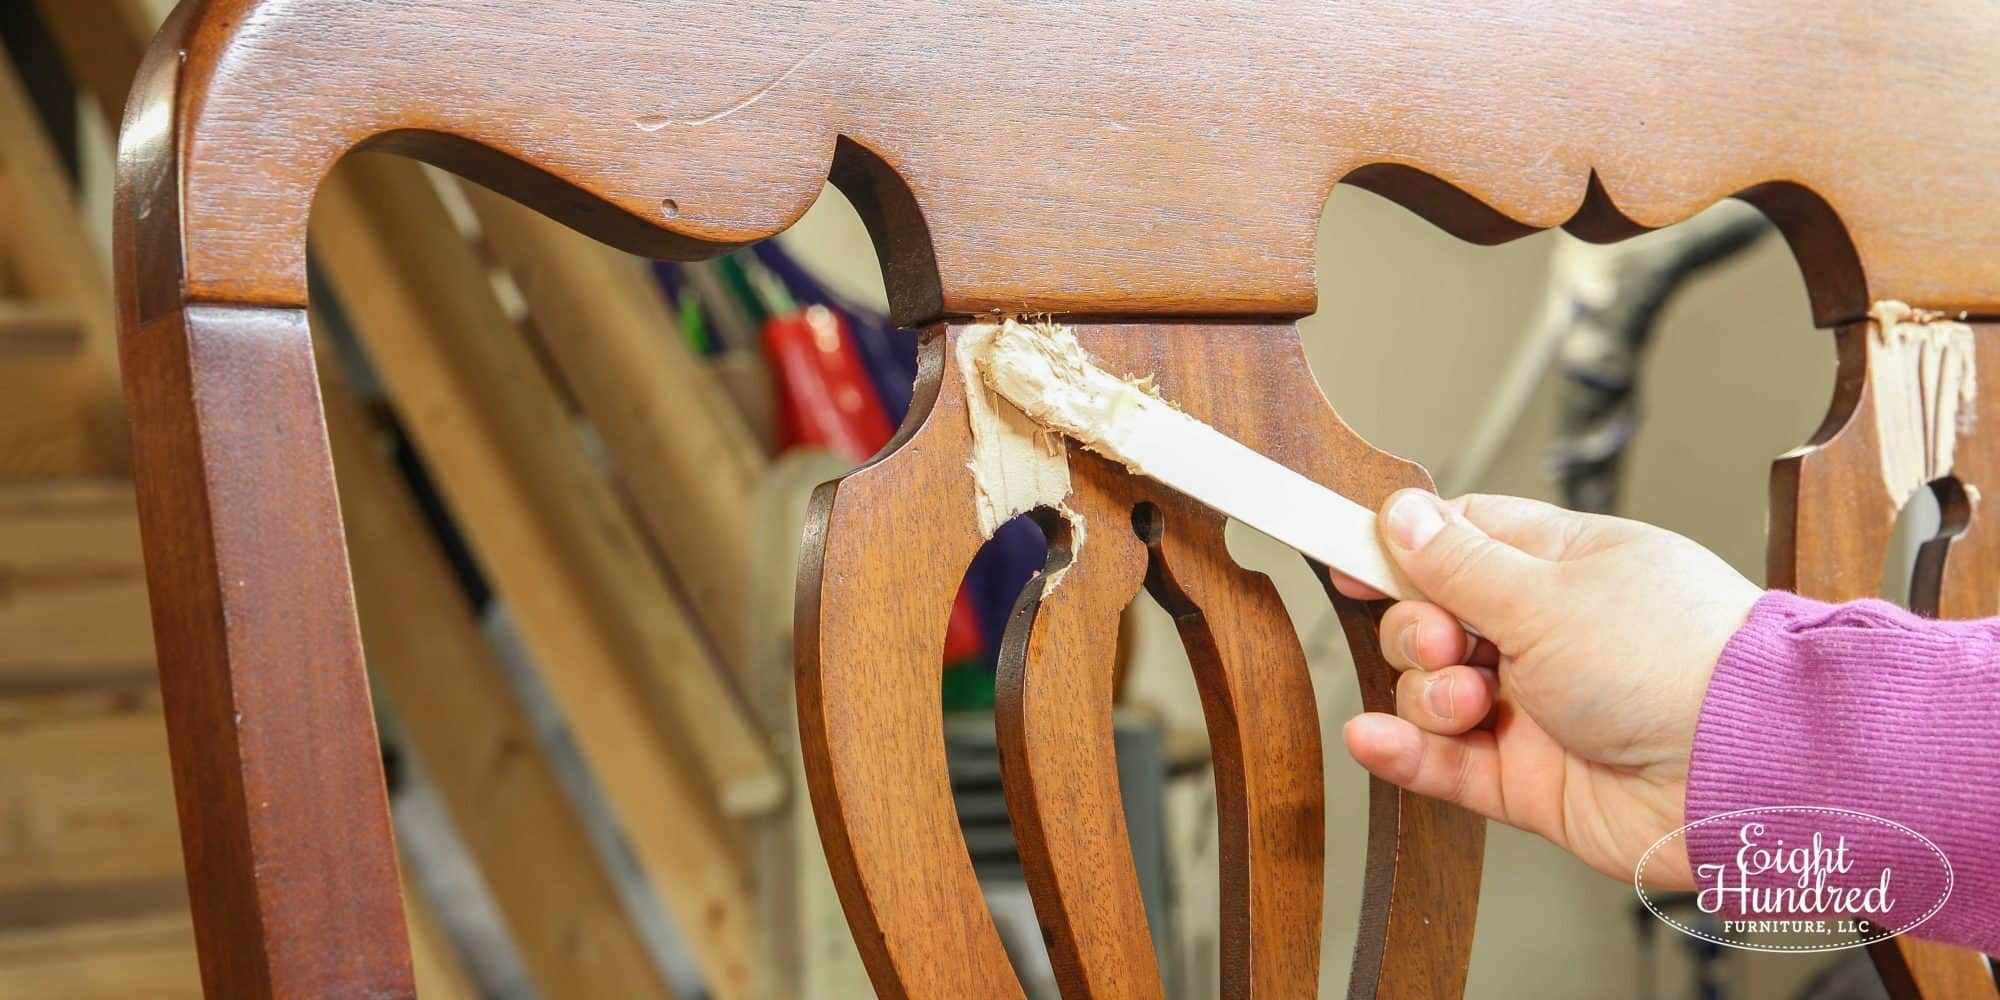 Filling a crack in a settee with Bondo